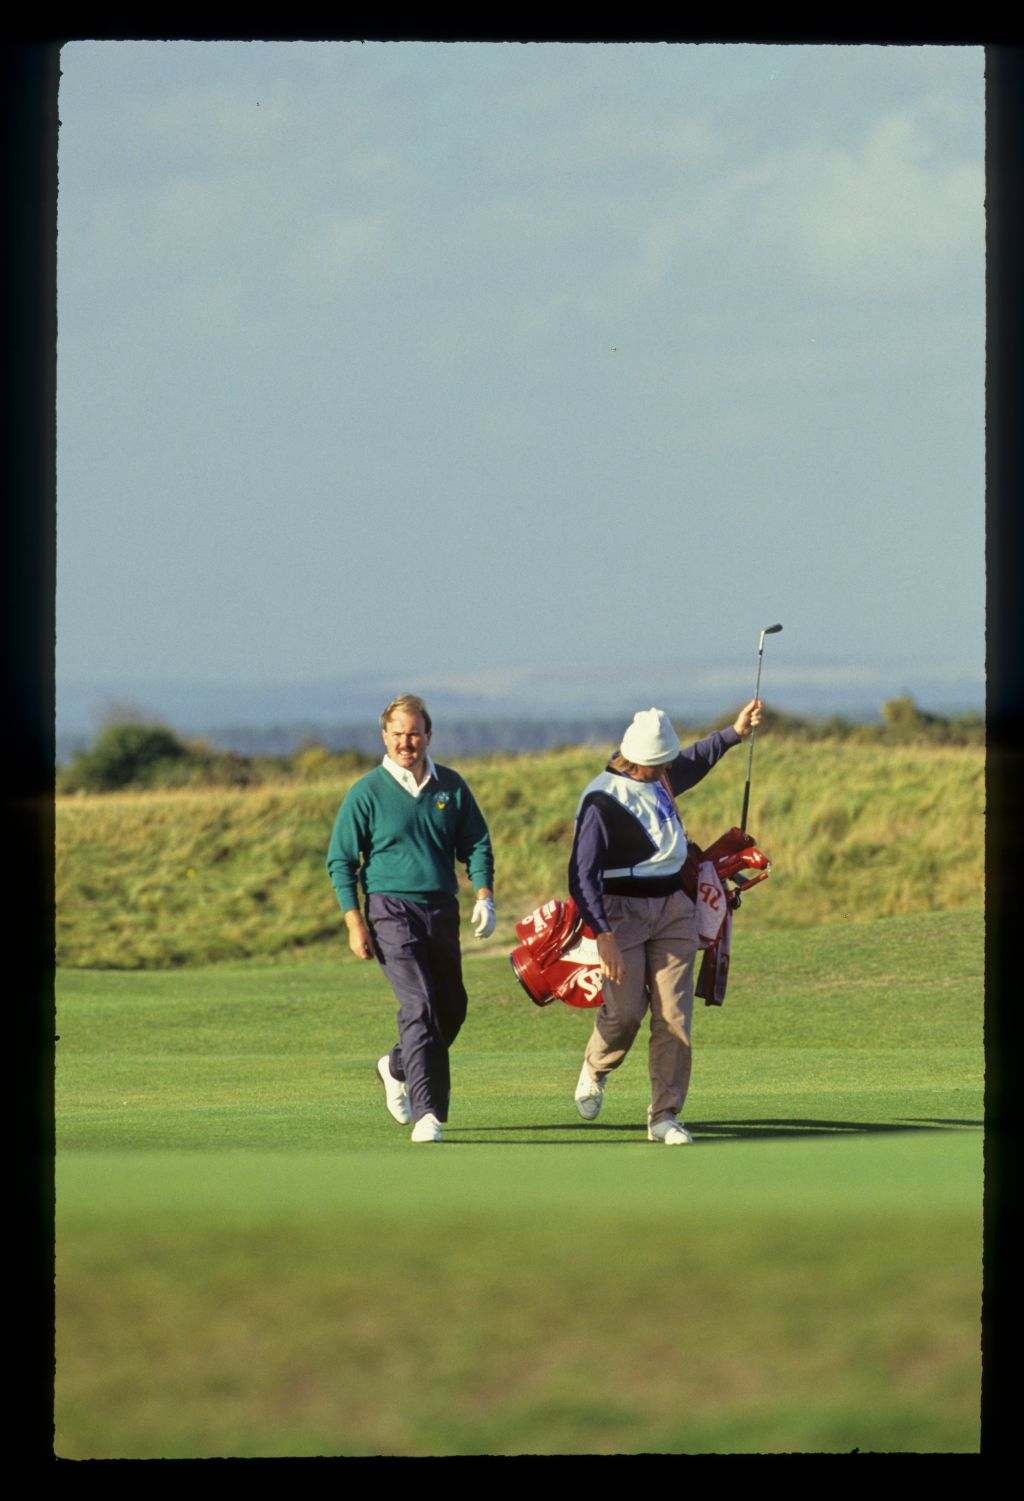 Ronan Rafferty and his caddie walking the fairway on the way to victory at the 1990 Dunhill Cup